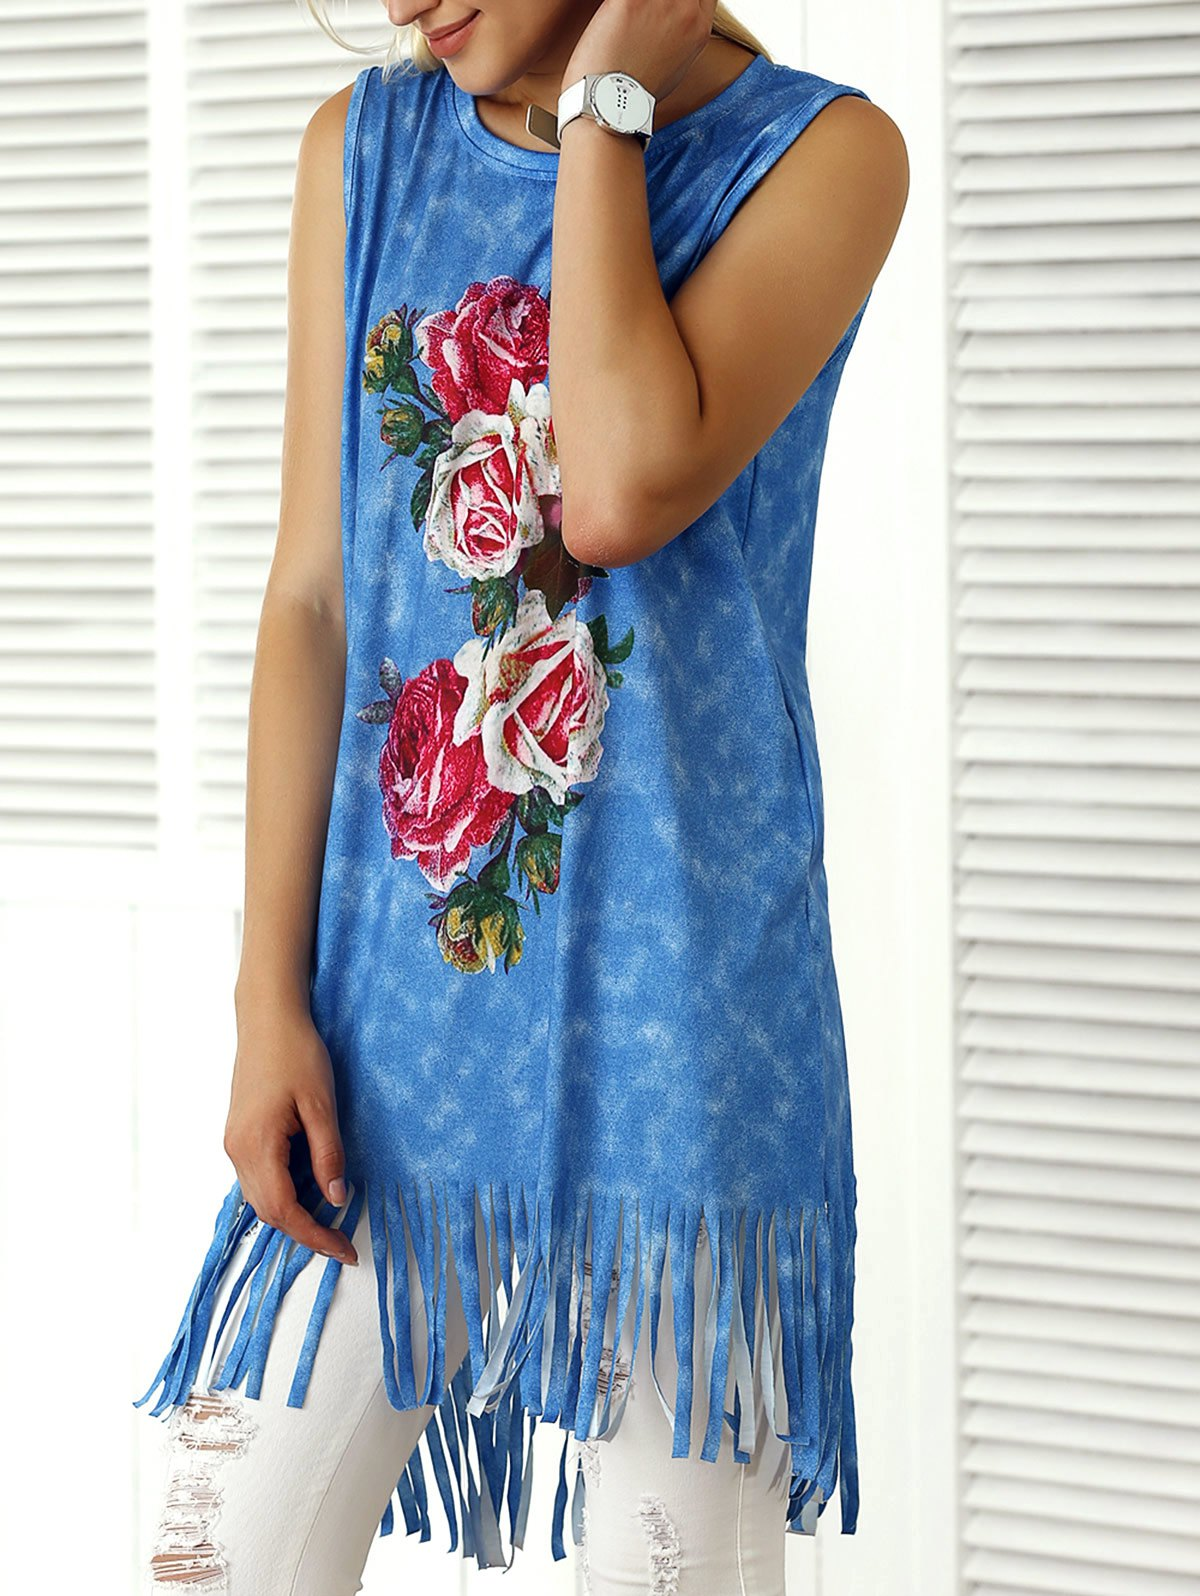 Floral Fringe High Low Tank TopClothes<br><br><br>Size: S<br>Color: BLUE